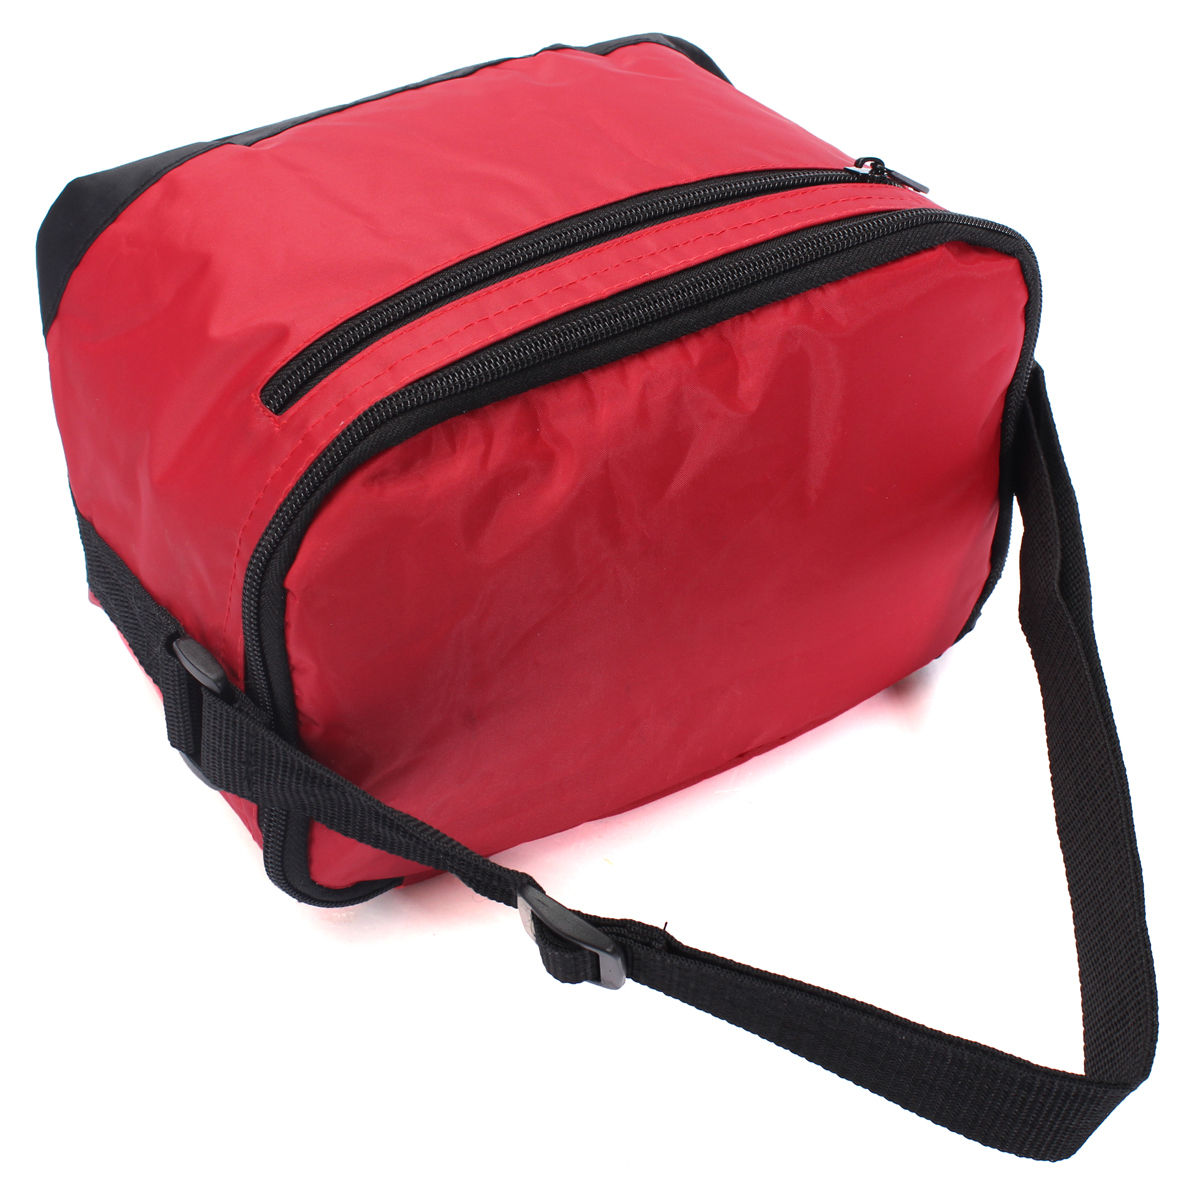 FGGS Thermal Cooler Waterproof Insulated Portable Tote Picnic Lunch Bag New Stylish red